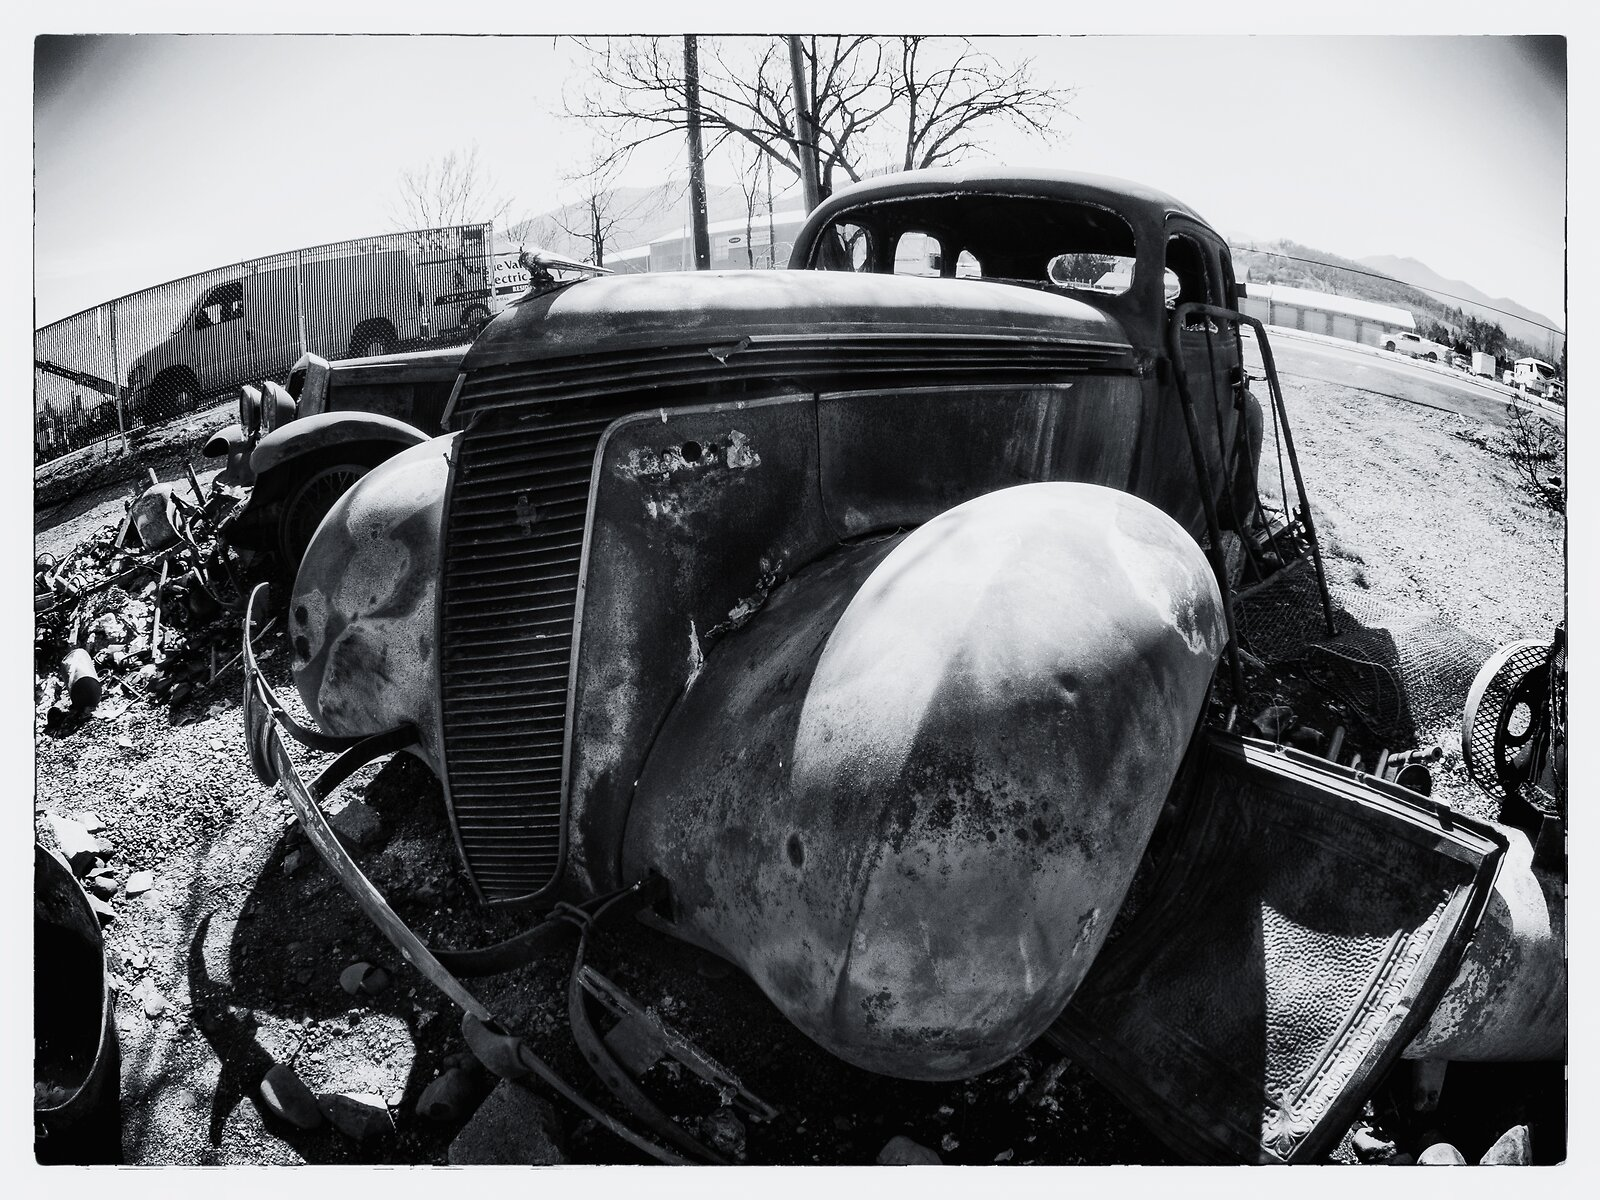 Q7_Mar2_21_fish-eye_burned_jalopy_#3(b&w).jpg